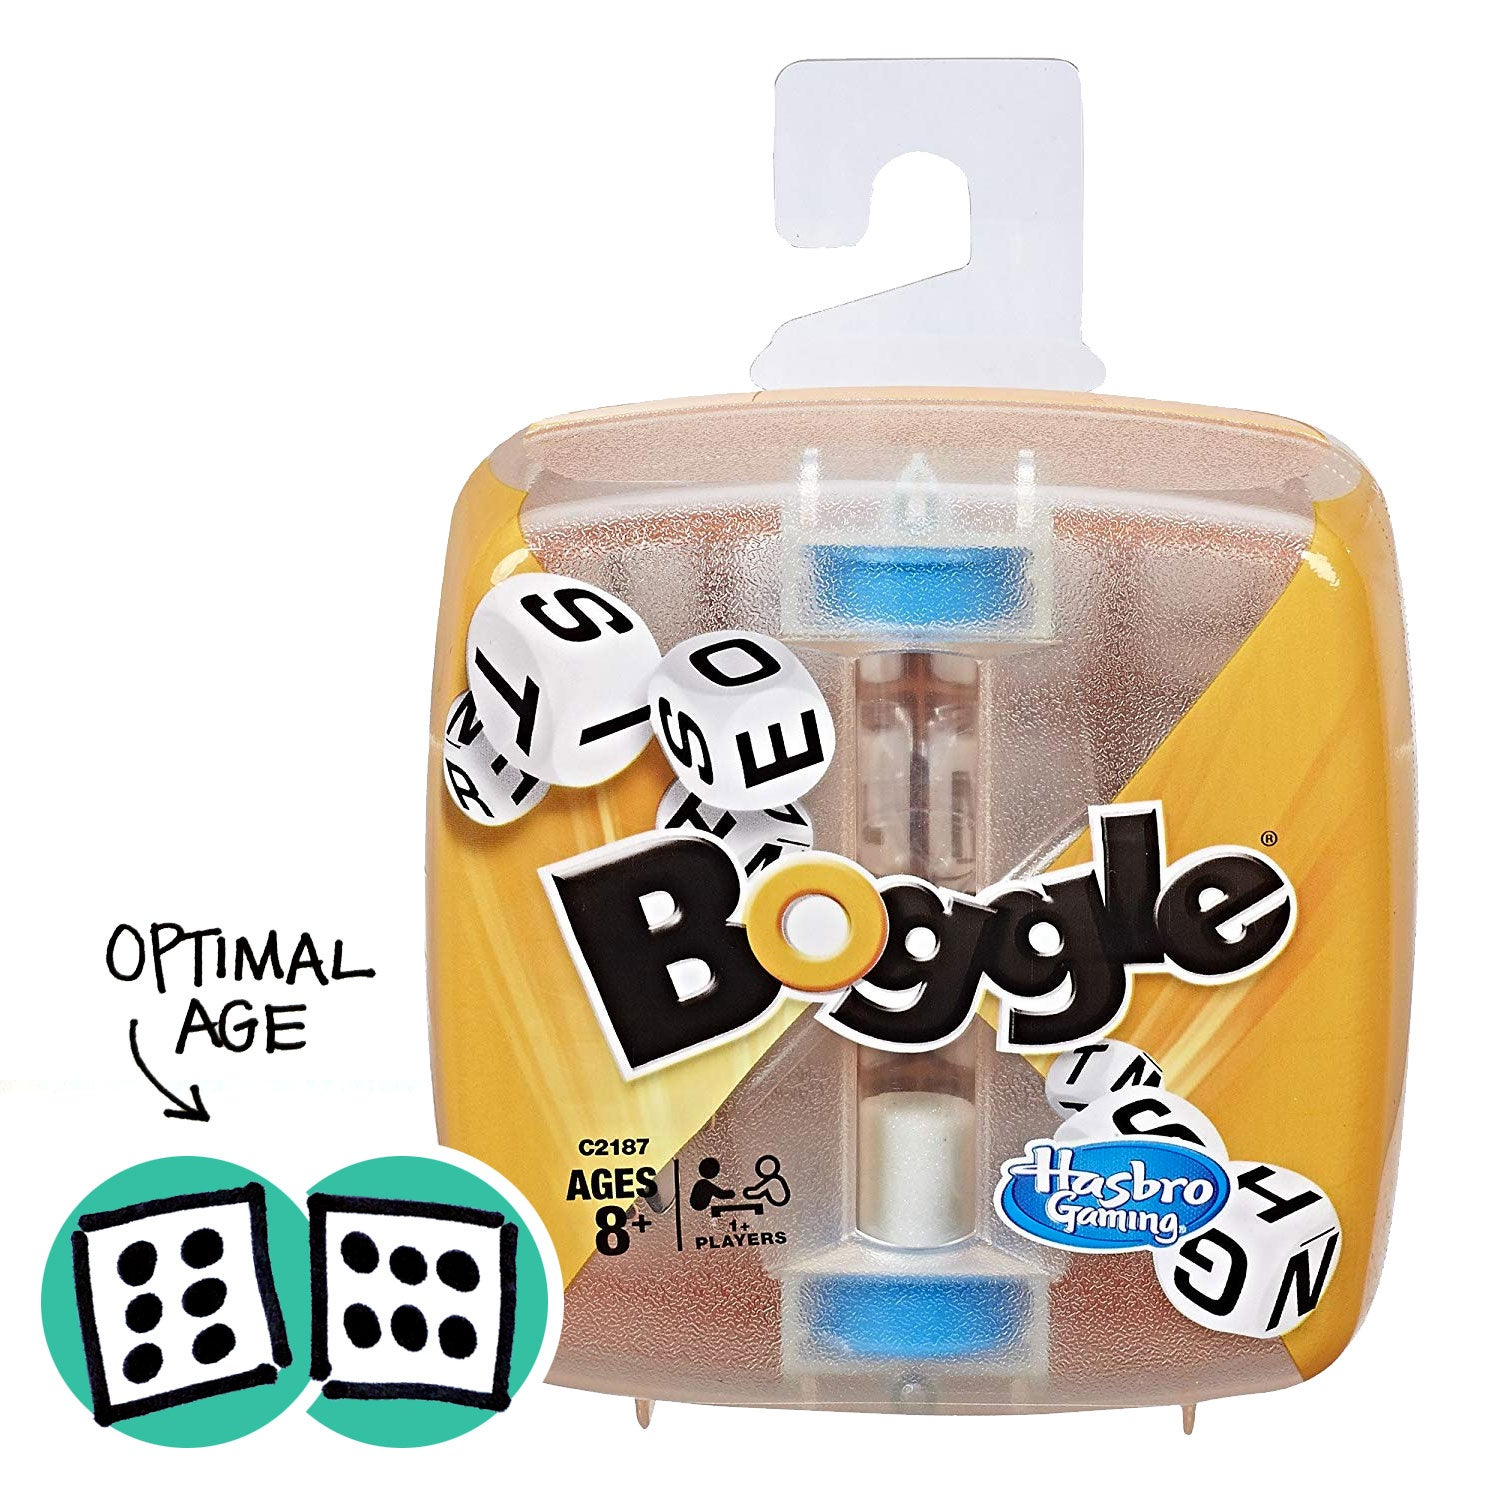 Hasbro Boggle Replacement 16 Dice Blue Letter Cubes Game Parts